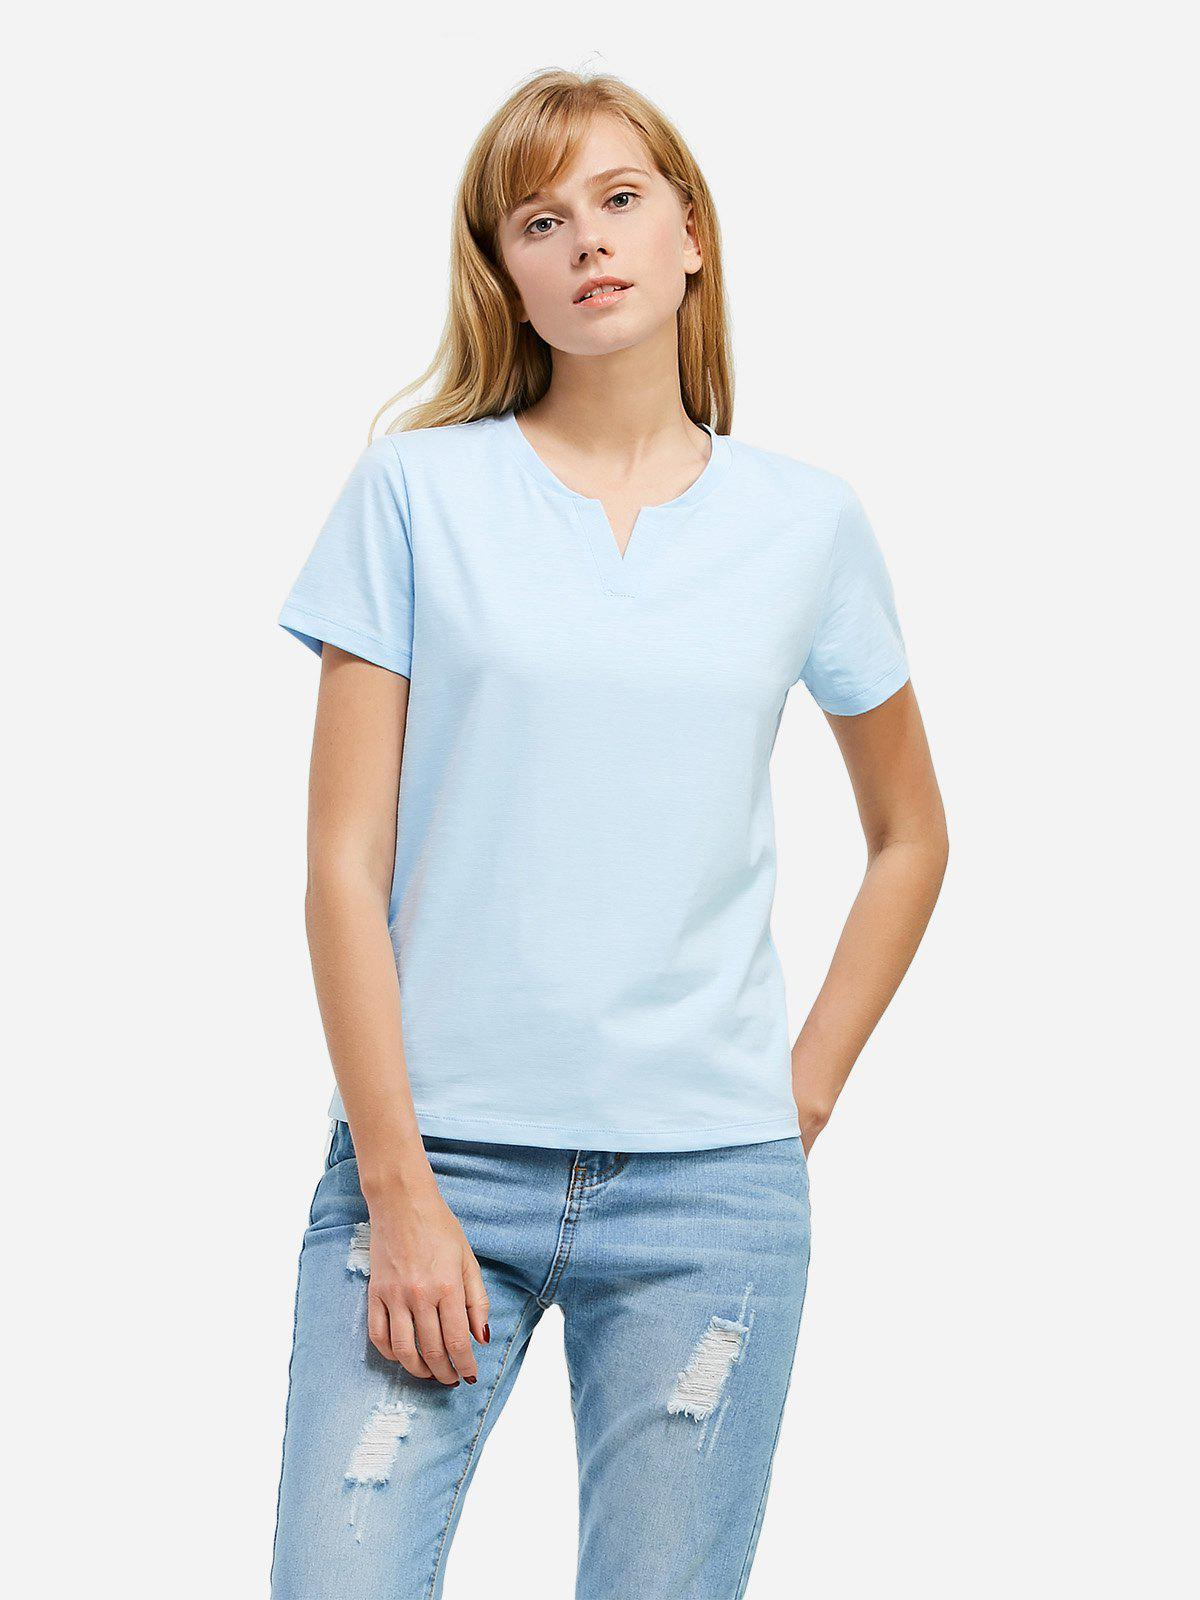 ZAN.STYLE Split Neck T-shirt - LIGHT BLUE L